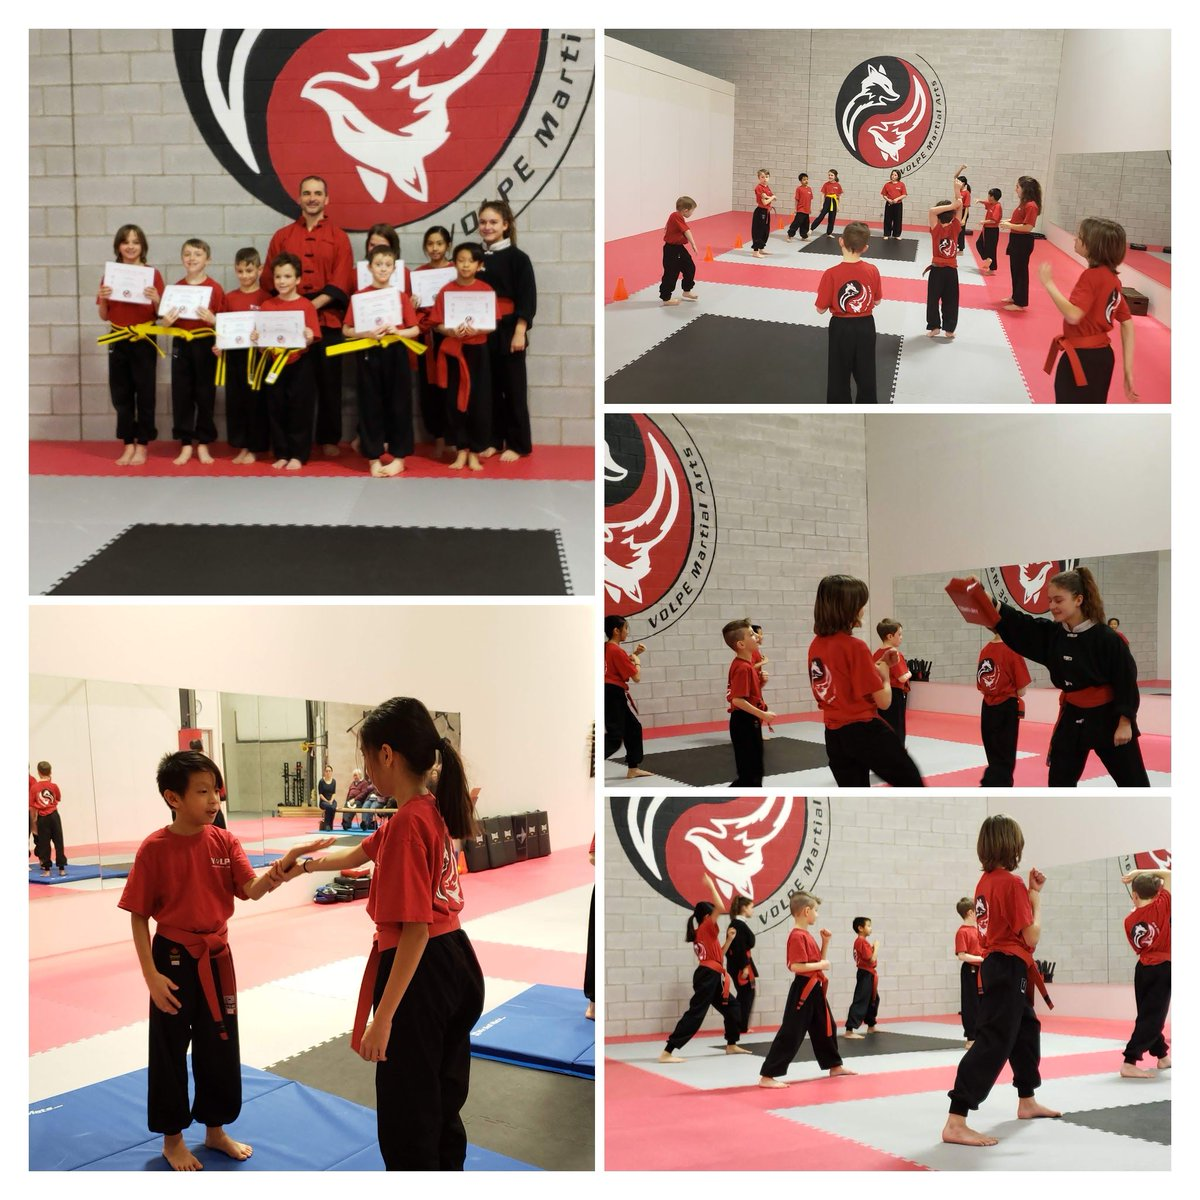 #ThankfulThursday: We are so thankful  for our VMA family! What are you thankful for today?   #kungfu #hapkido #martialarts #kwawesome #wrawesome #supportsmallbusiness #supportlocal #staypositive #fitness #training #virtual #online #kitchener #waterloo #gratitudepic.twitter.com/aR4uCpcSp2